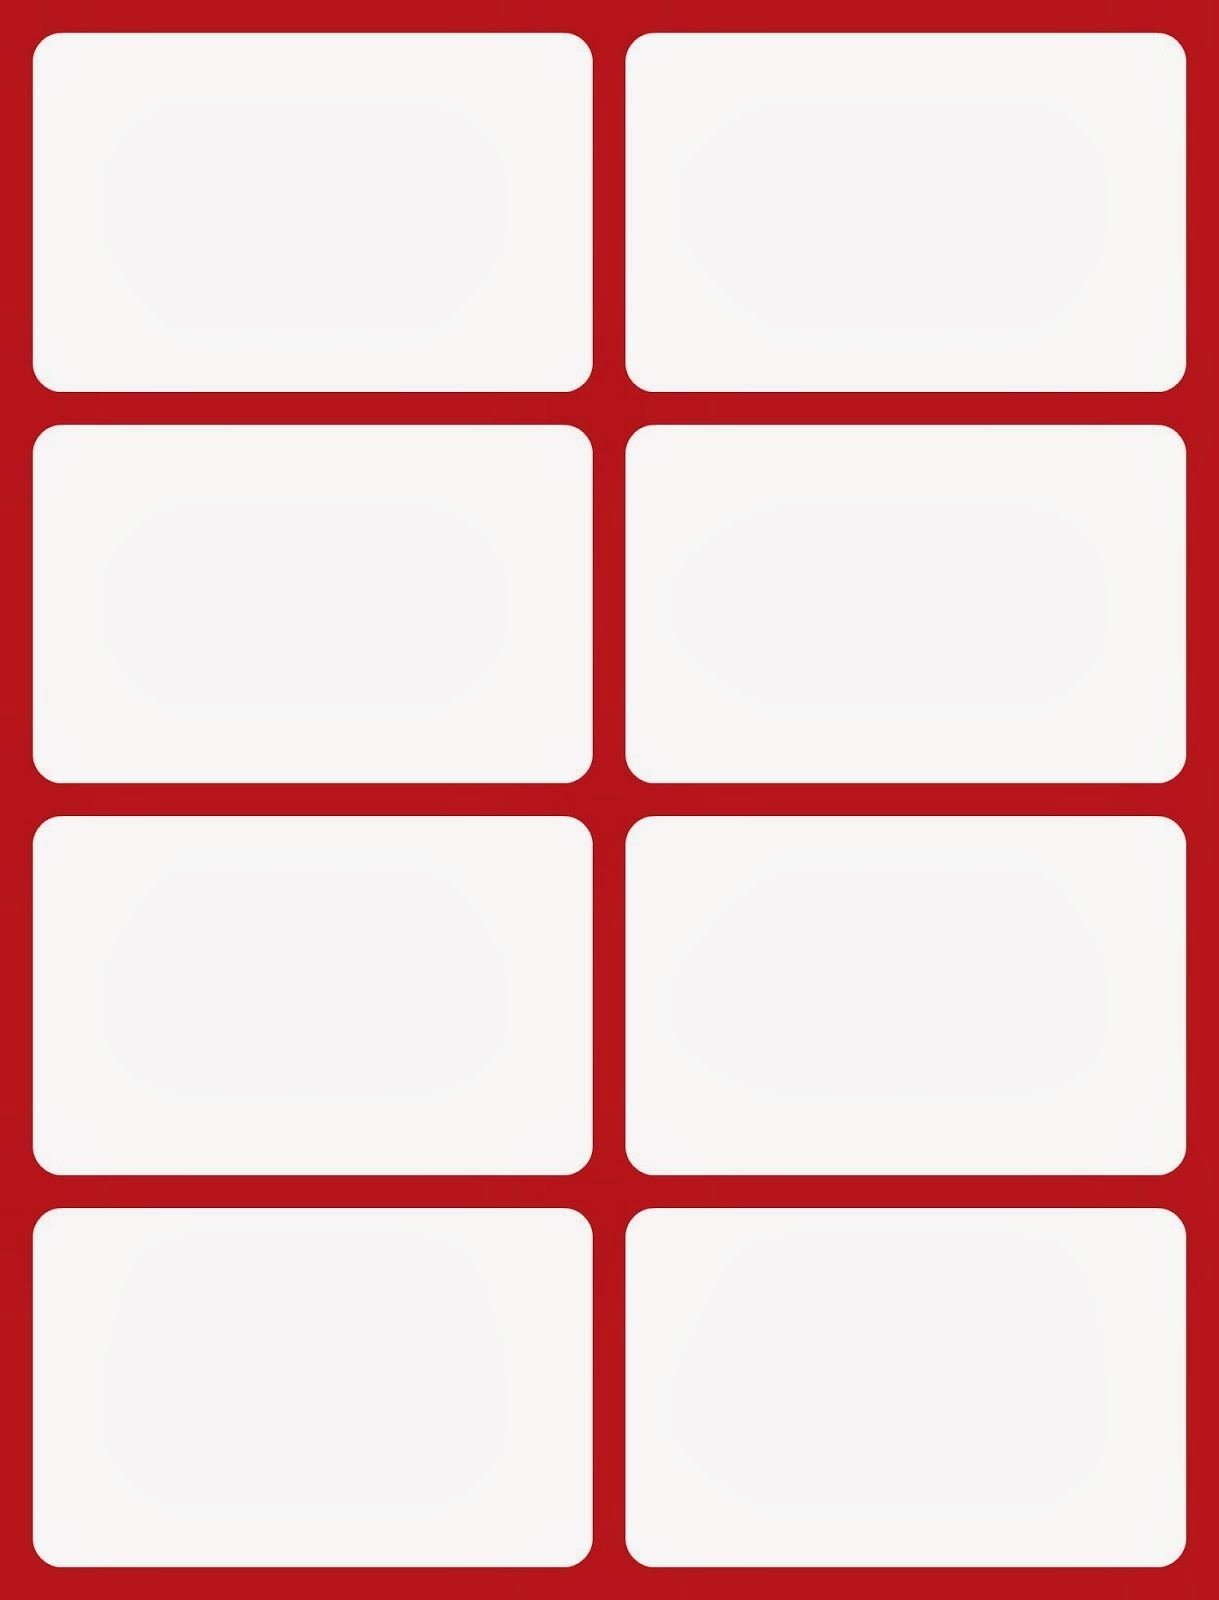 Free Printable Flash Card Templates Inspirational Printable Flash Cards for Preschoolers